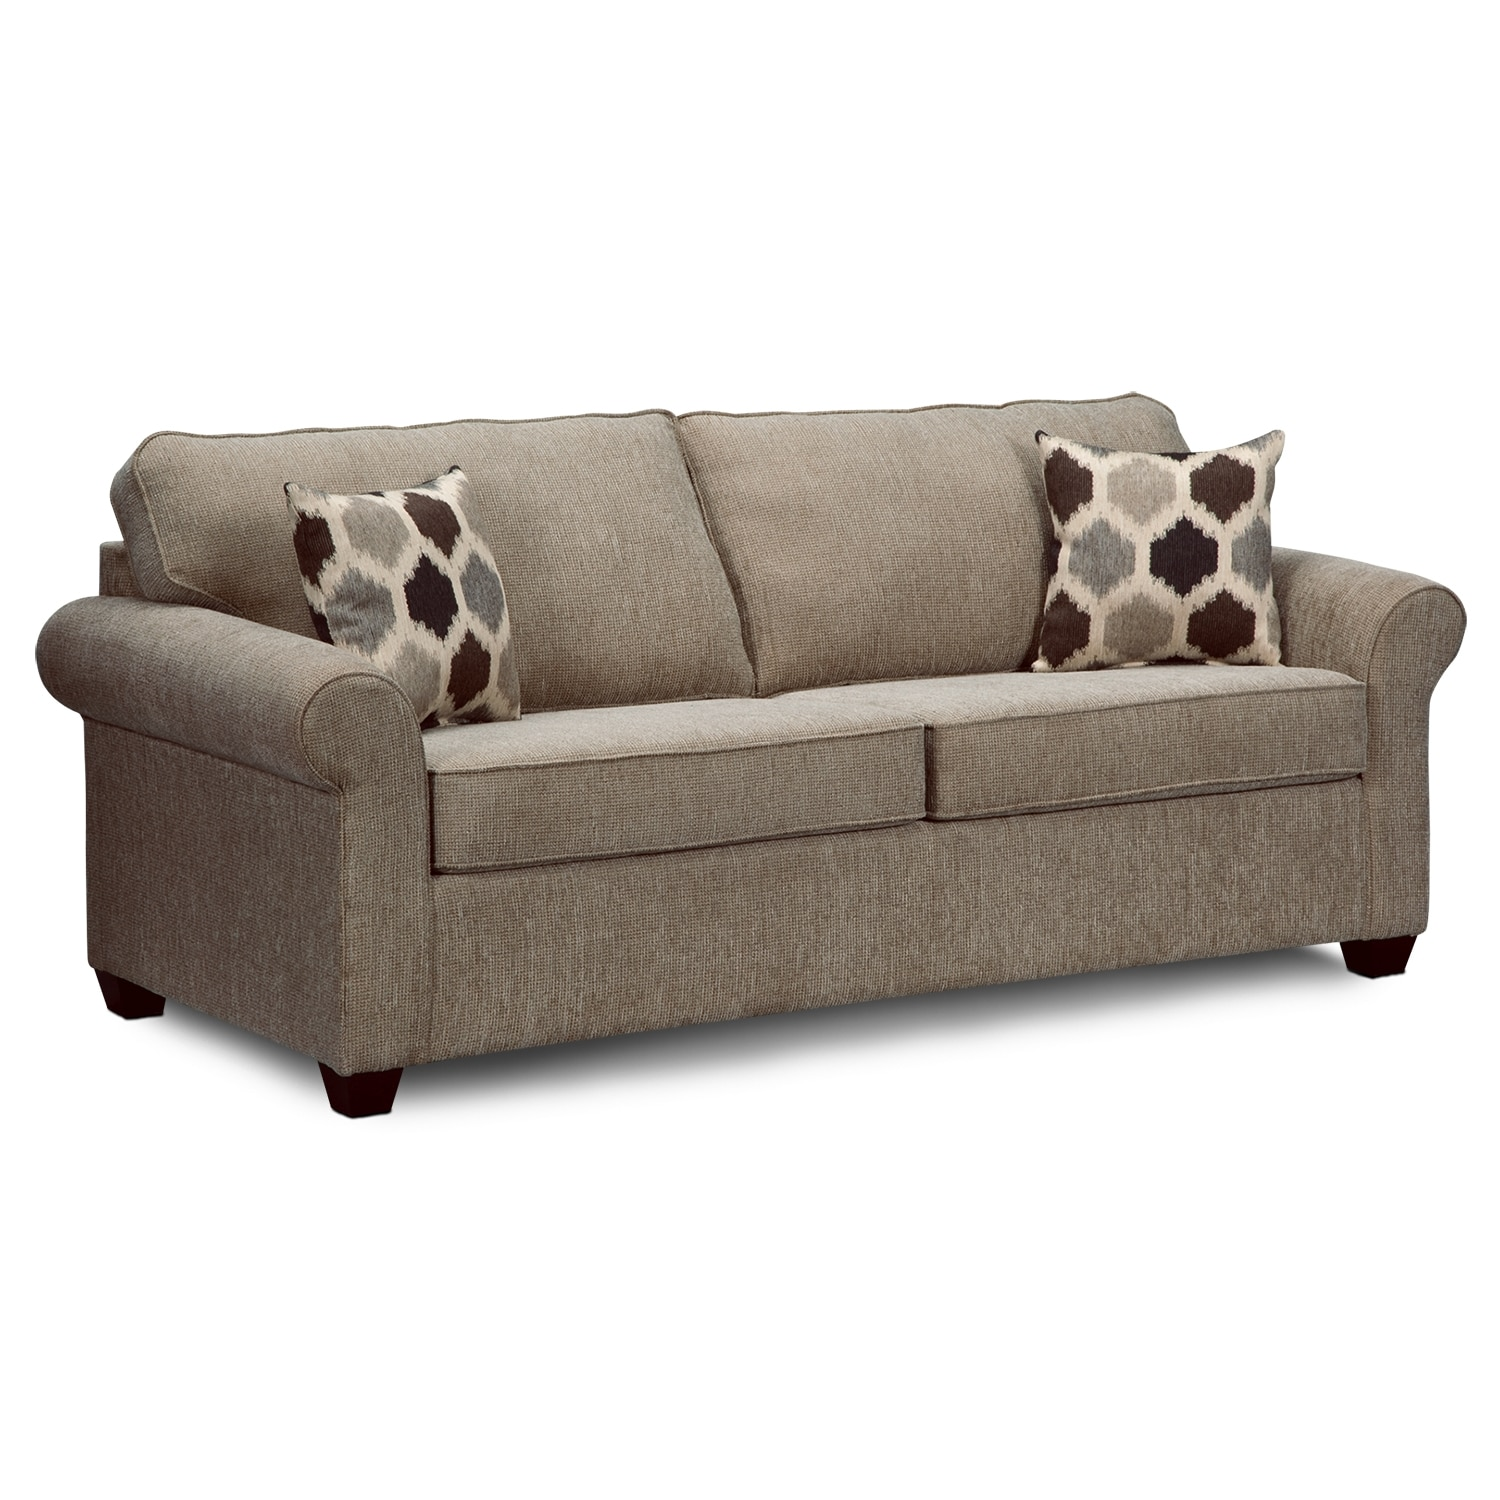 Fletcher queen sleeper sofa value city furniture Sofa sleeper loveseat